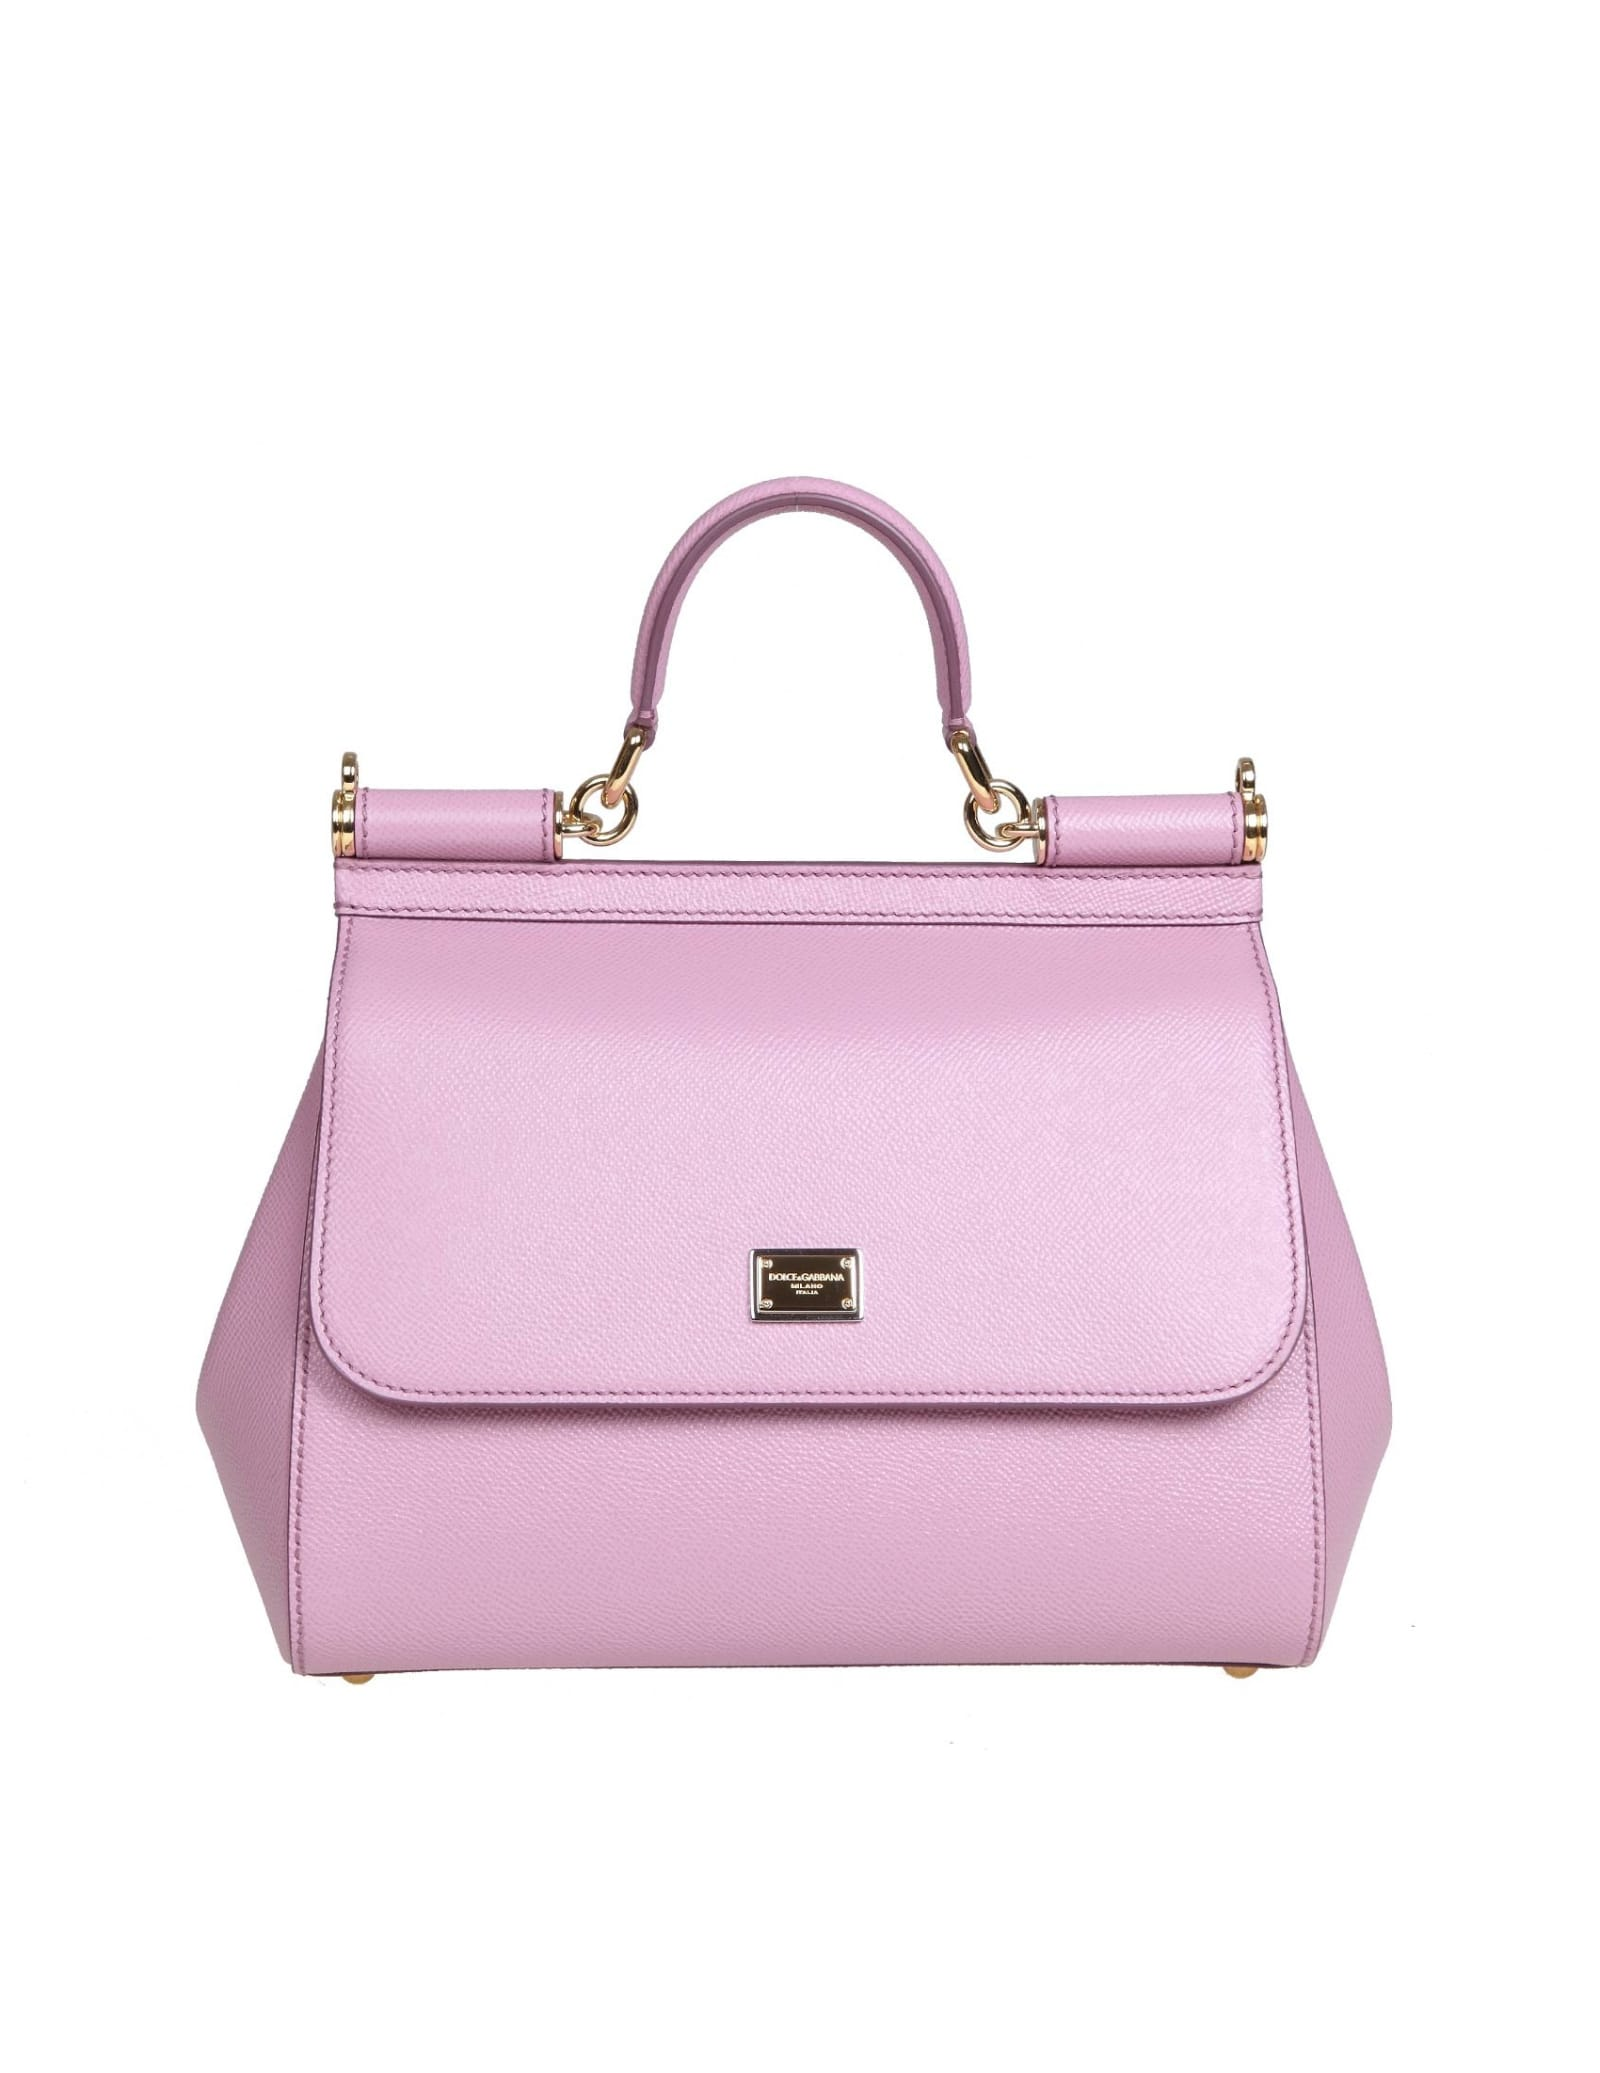 Dolce & Gabbana MEDIUM SICILY BAG IN DAUPHINE LEATHER